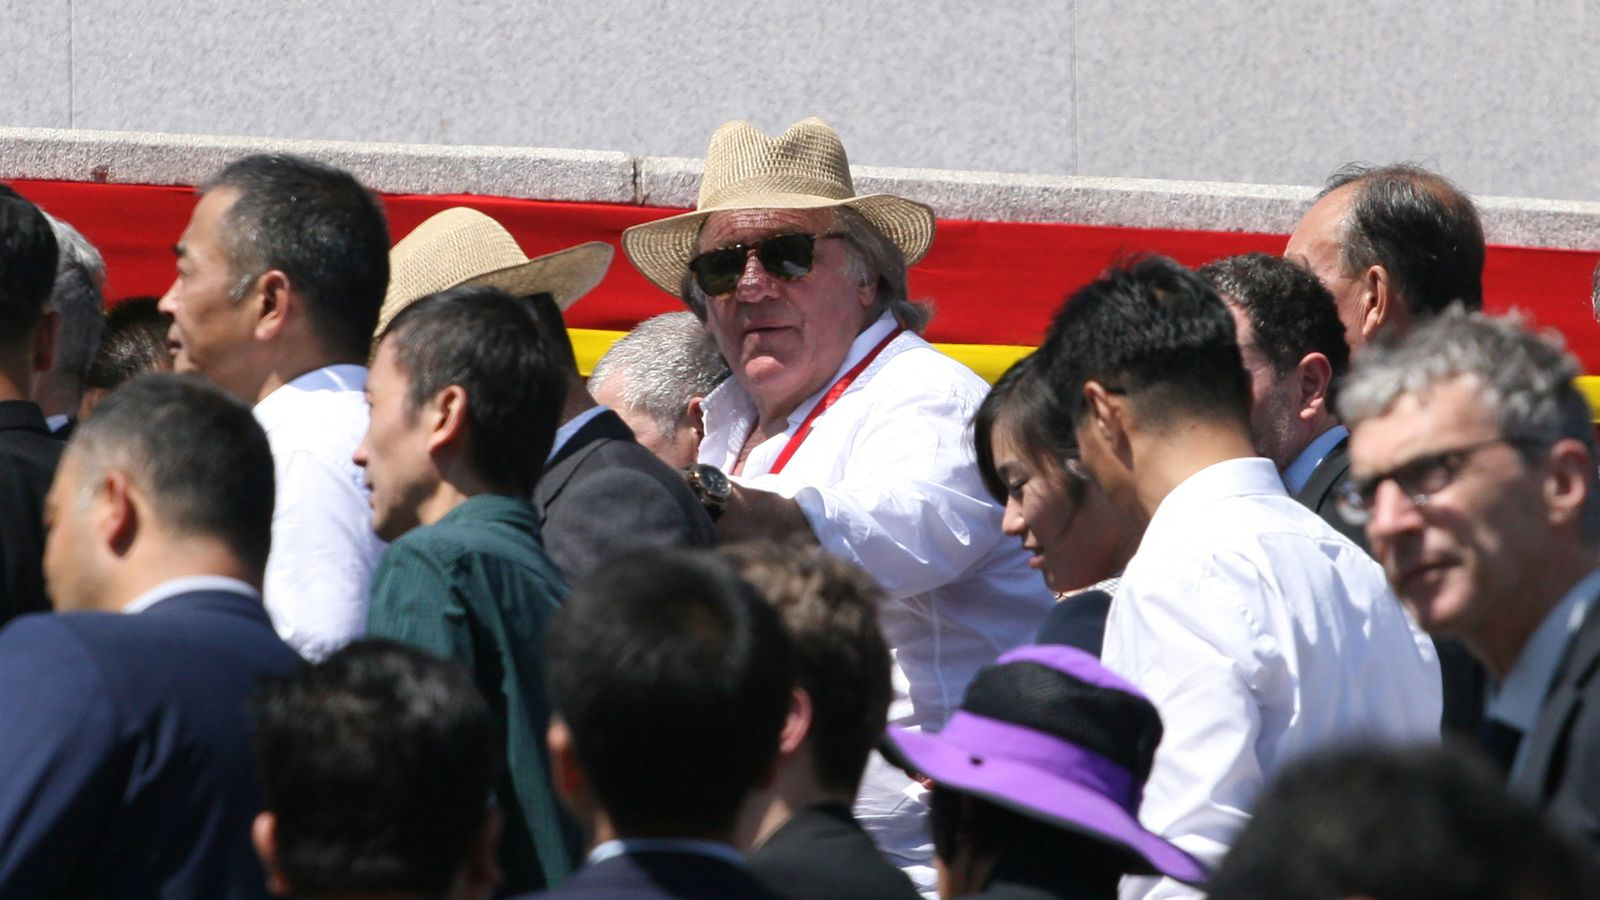 Depardieu became the personification of a citizen of the USSR 04/06/2013 100